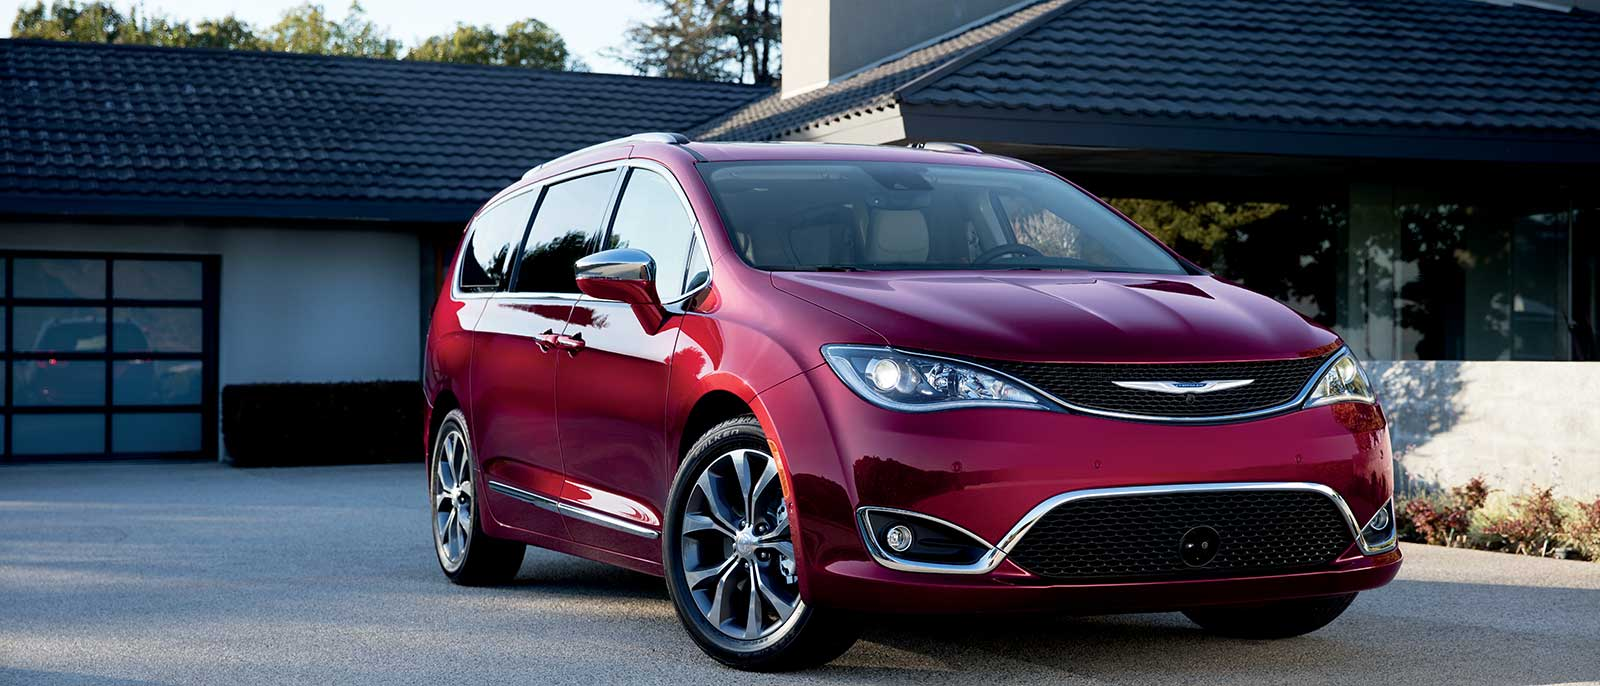 2017 Chrysler Pacifica in red